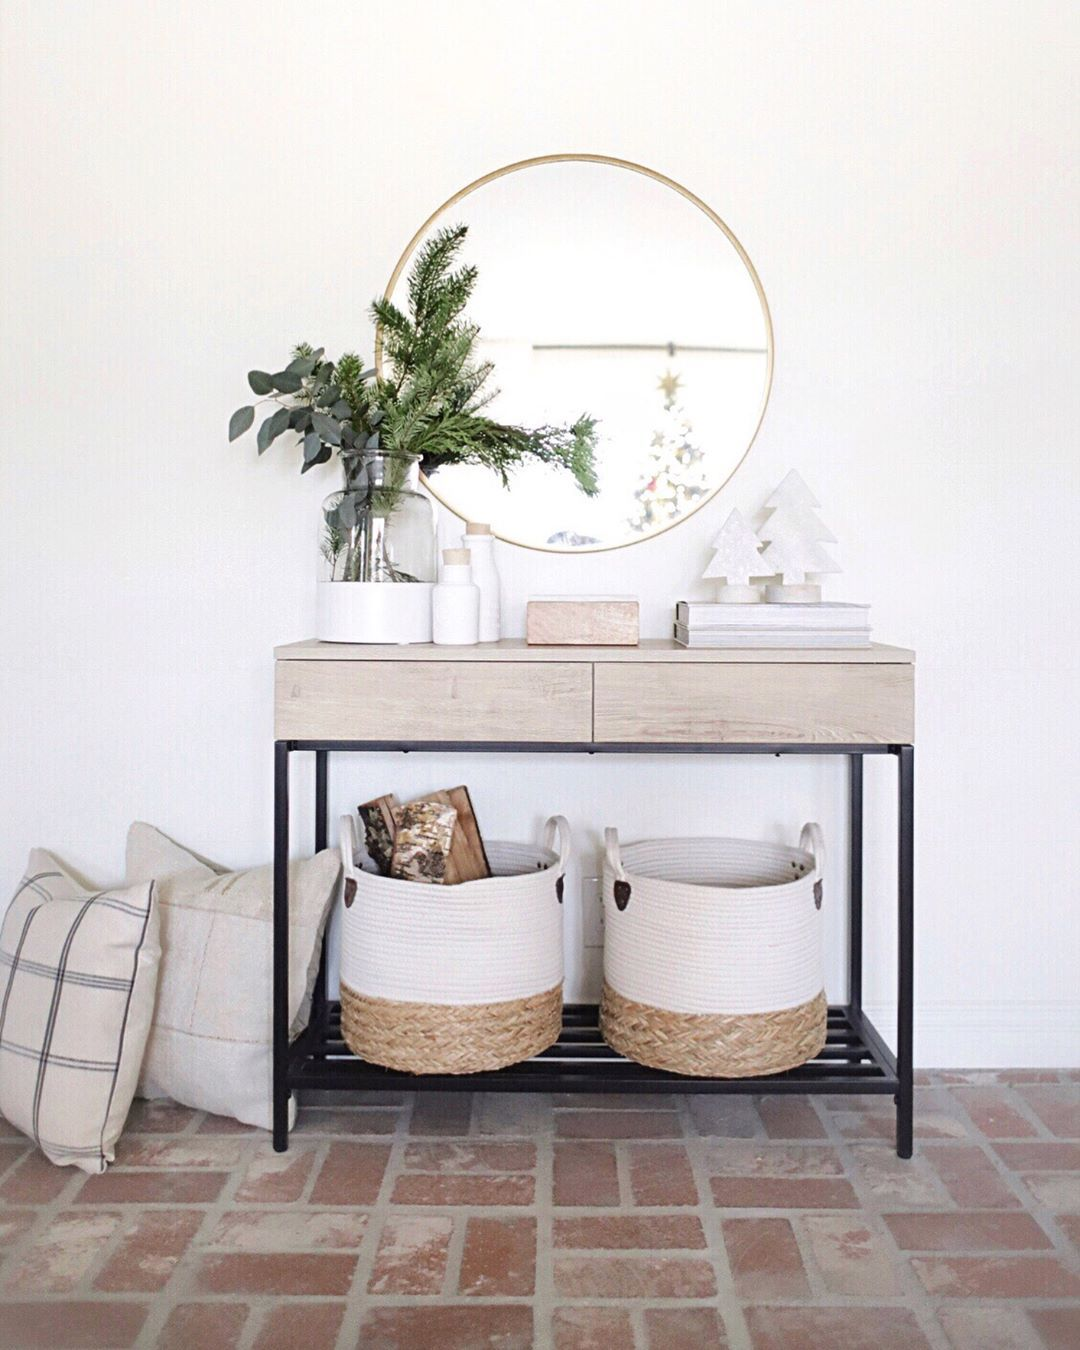 Idee Deco Entree Salon californians: protect and detox from wildfire smoke | idée